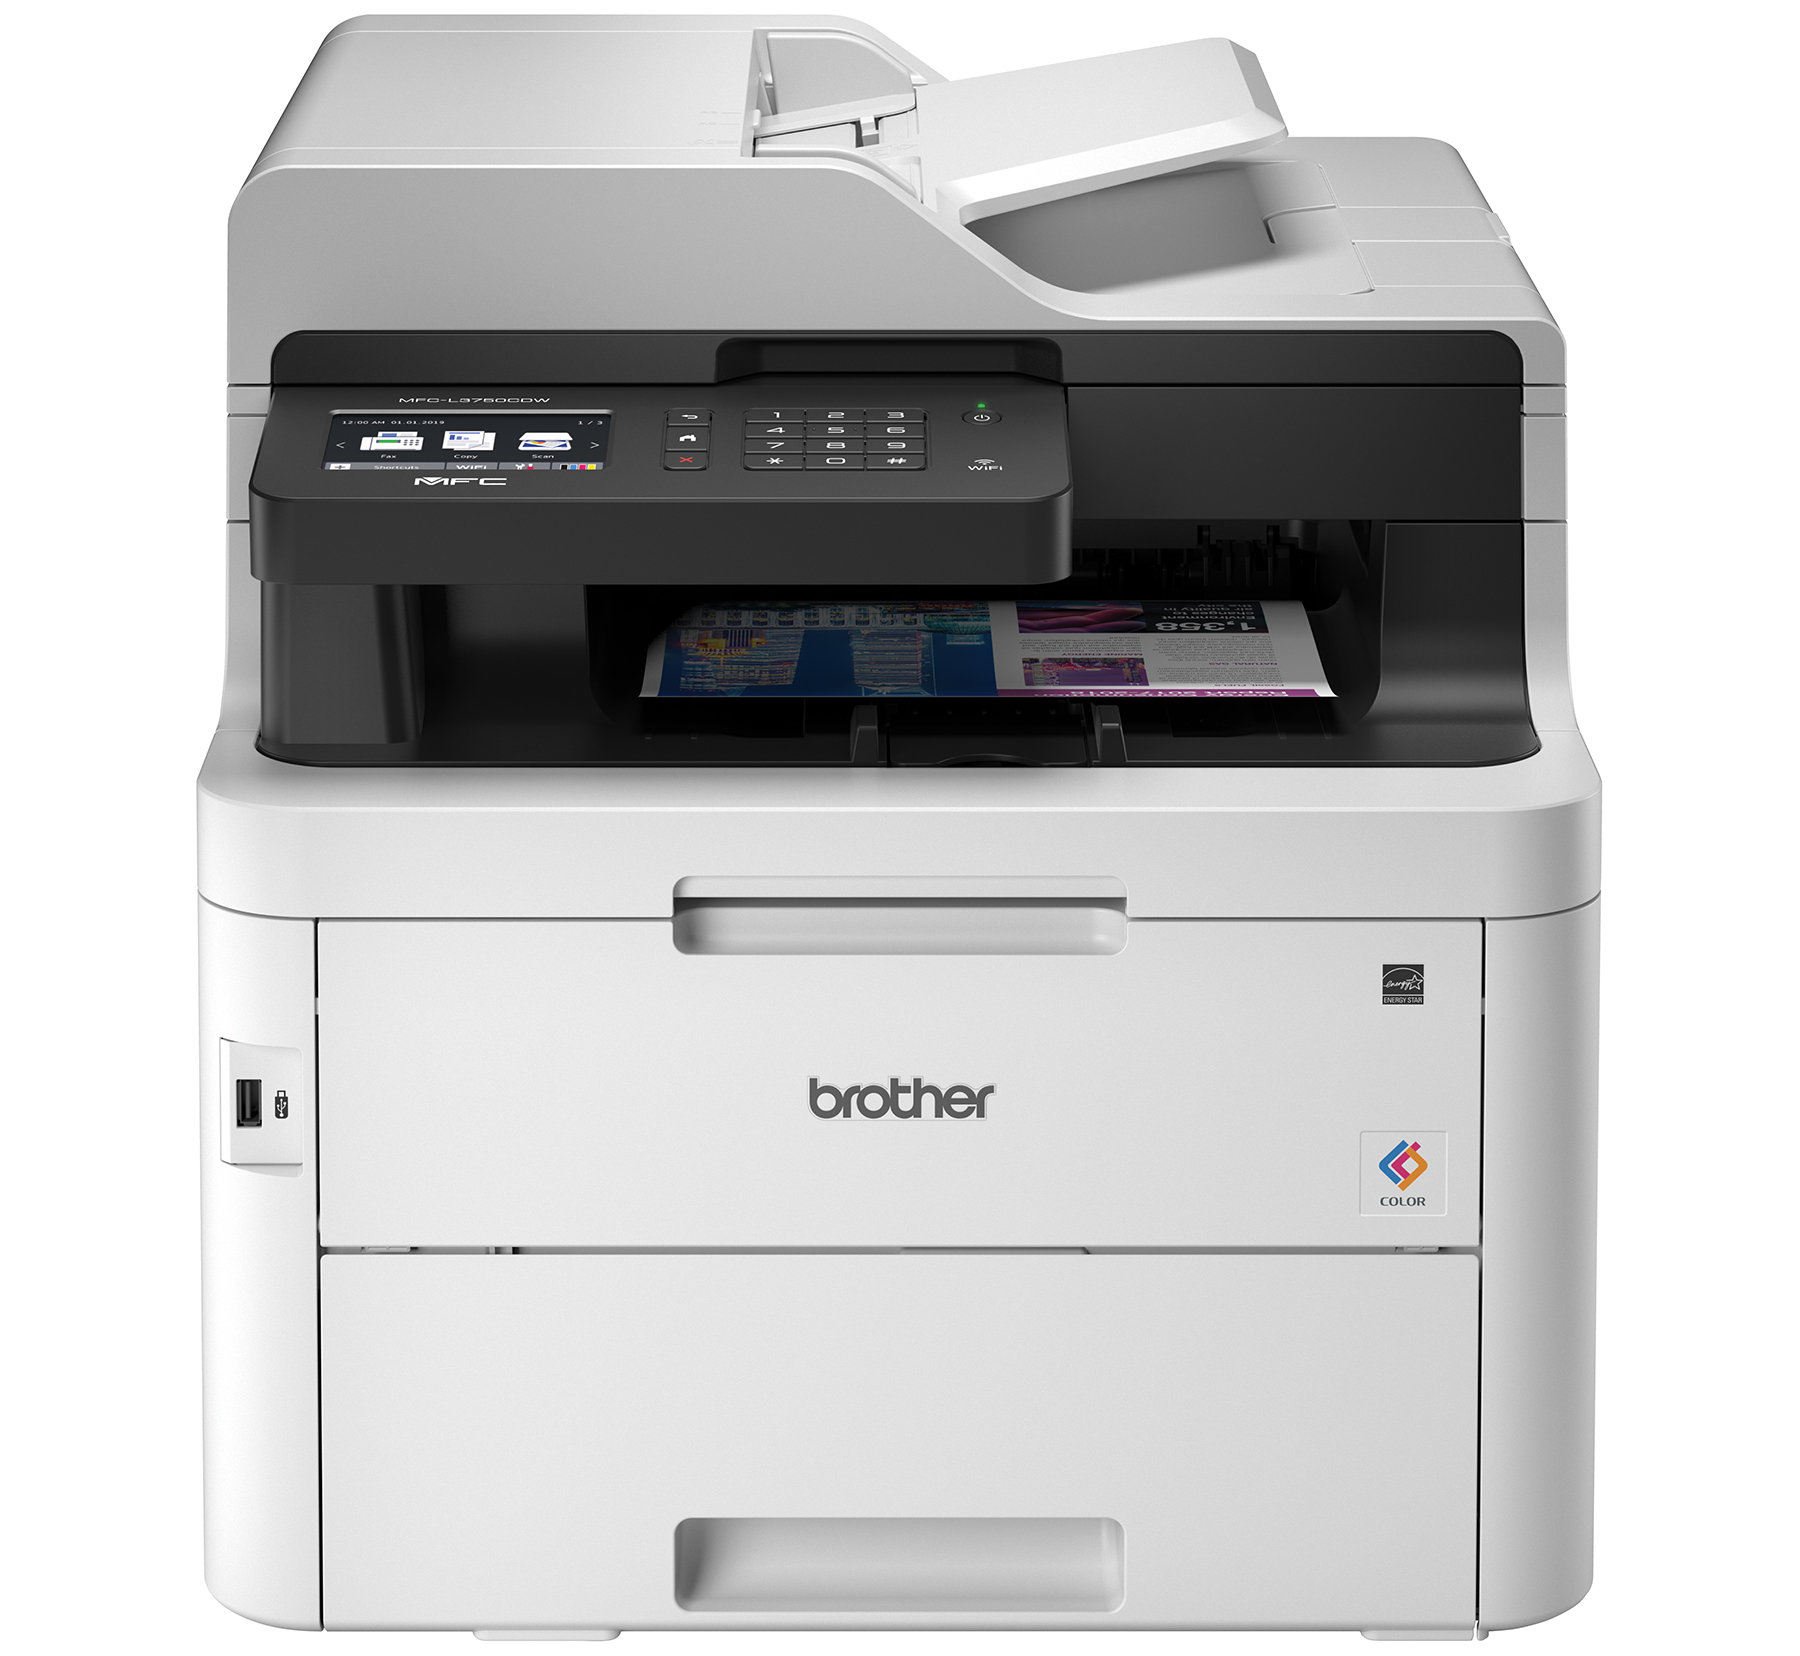 Brother MFC-L3750CDW Compact Digital Color All-in-One Printer Providing Laser Quality Results with 3.7� Color... by Brother